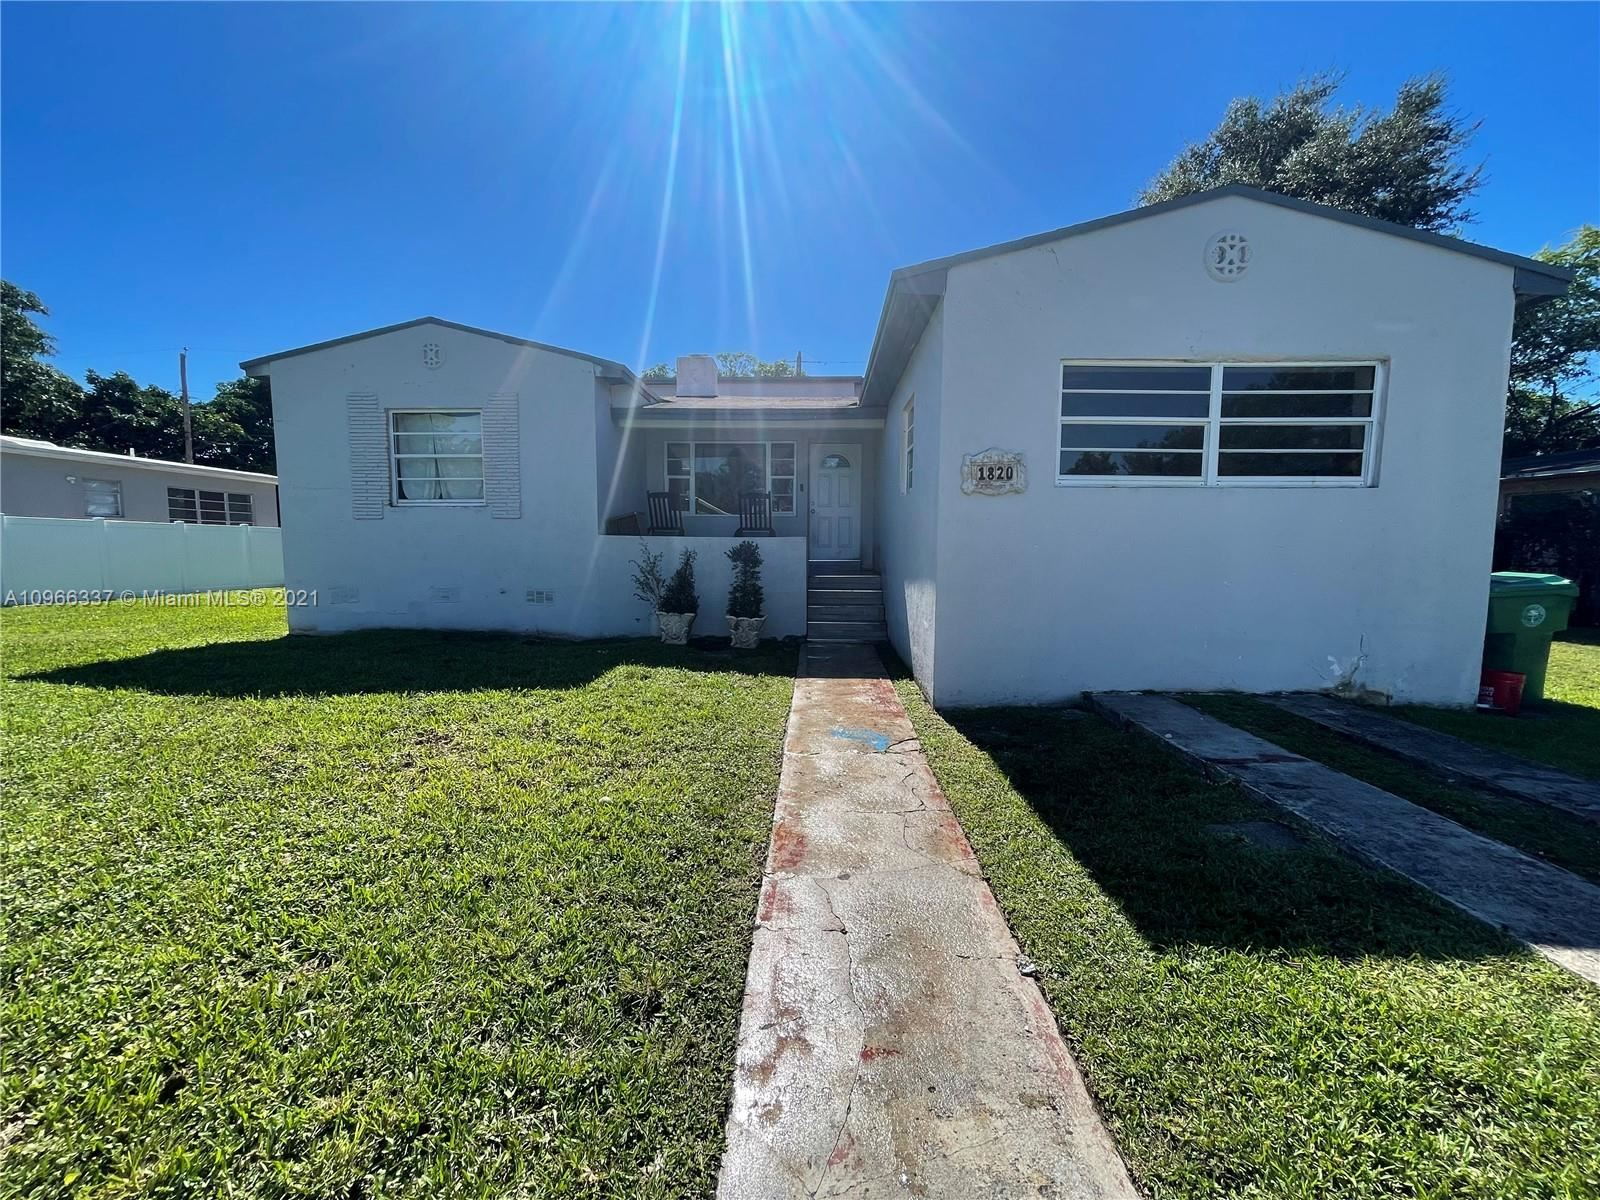 1820 NW 52nd St, Miami, FL 33142 - #: A10966337